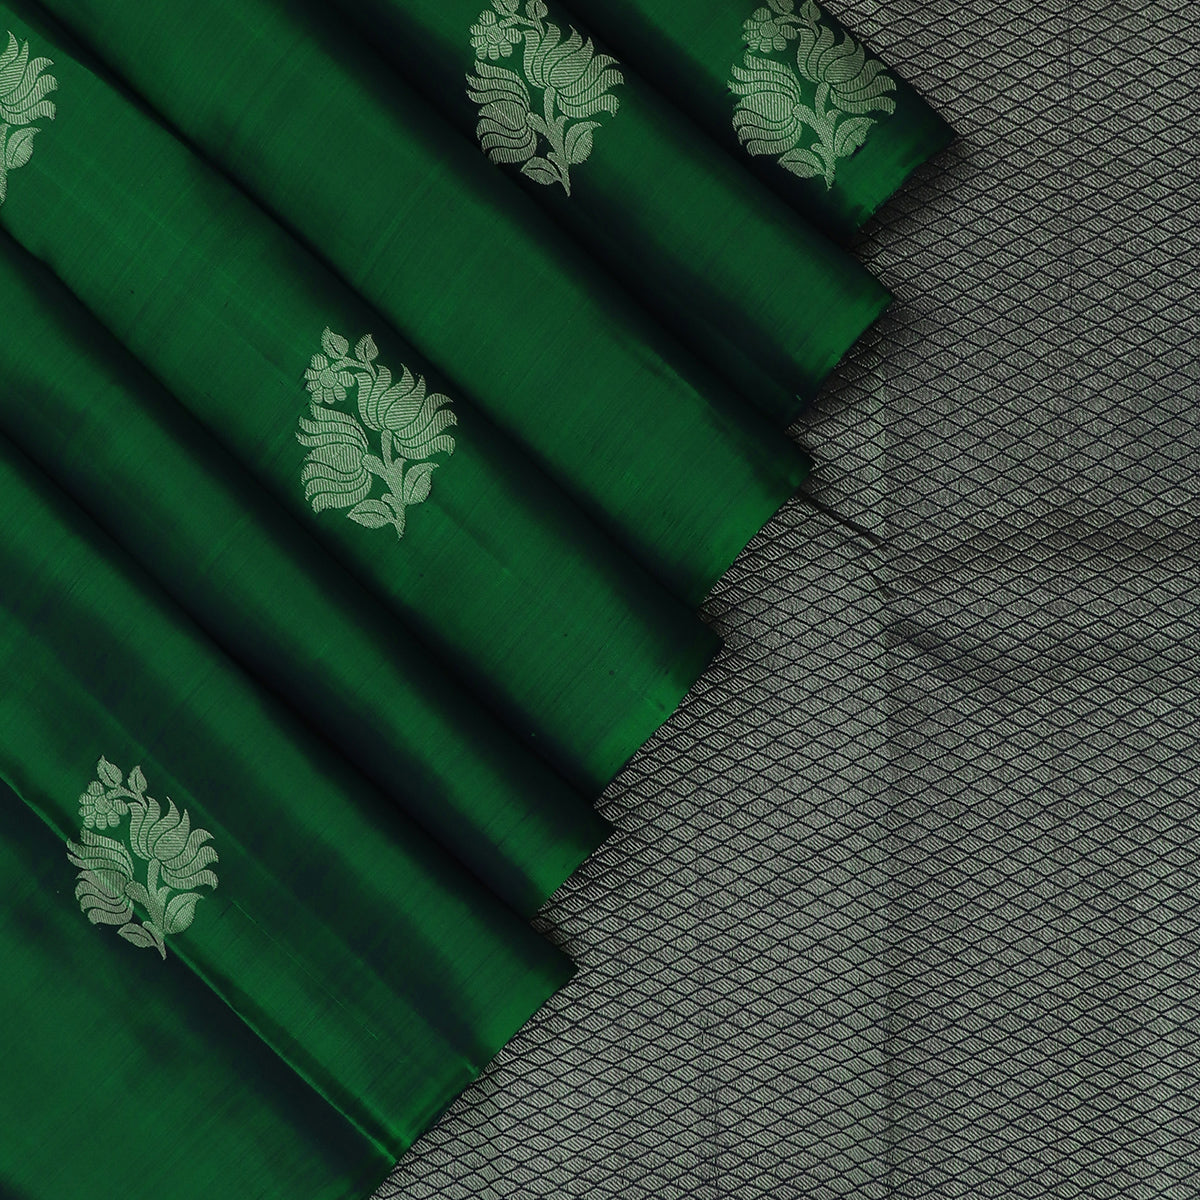 kanjivaram Silk Saree Dark Green and Blue Dual shade with Flower Silver border